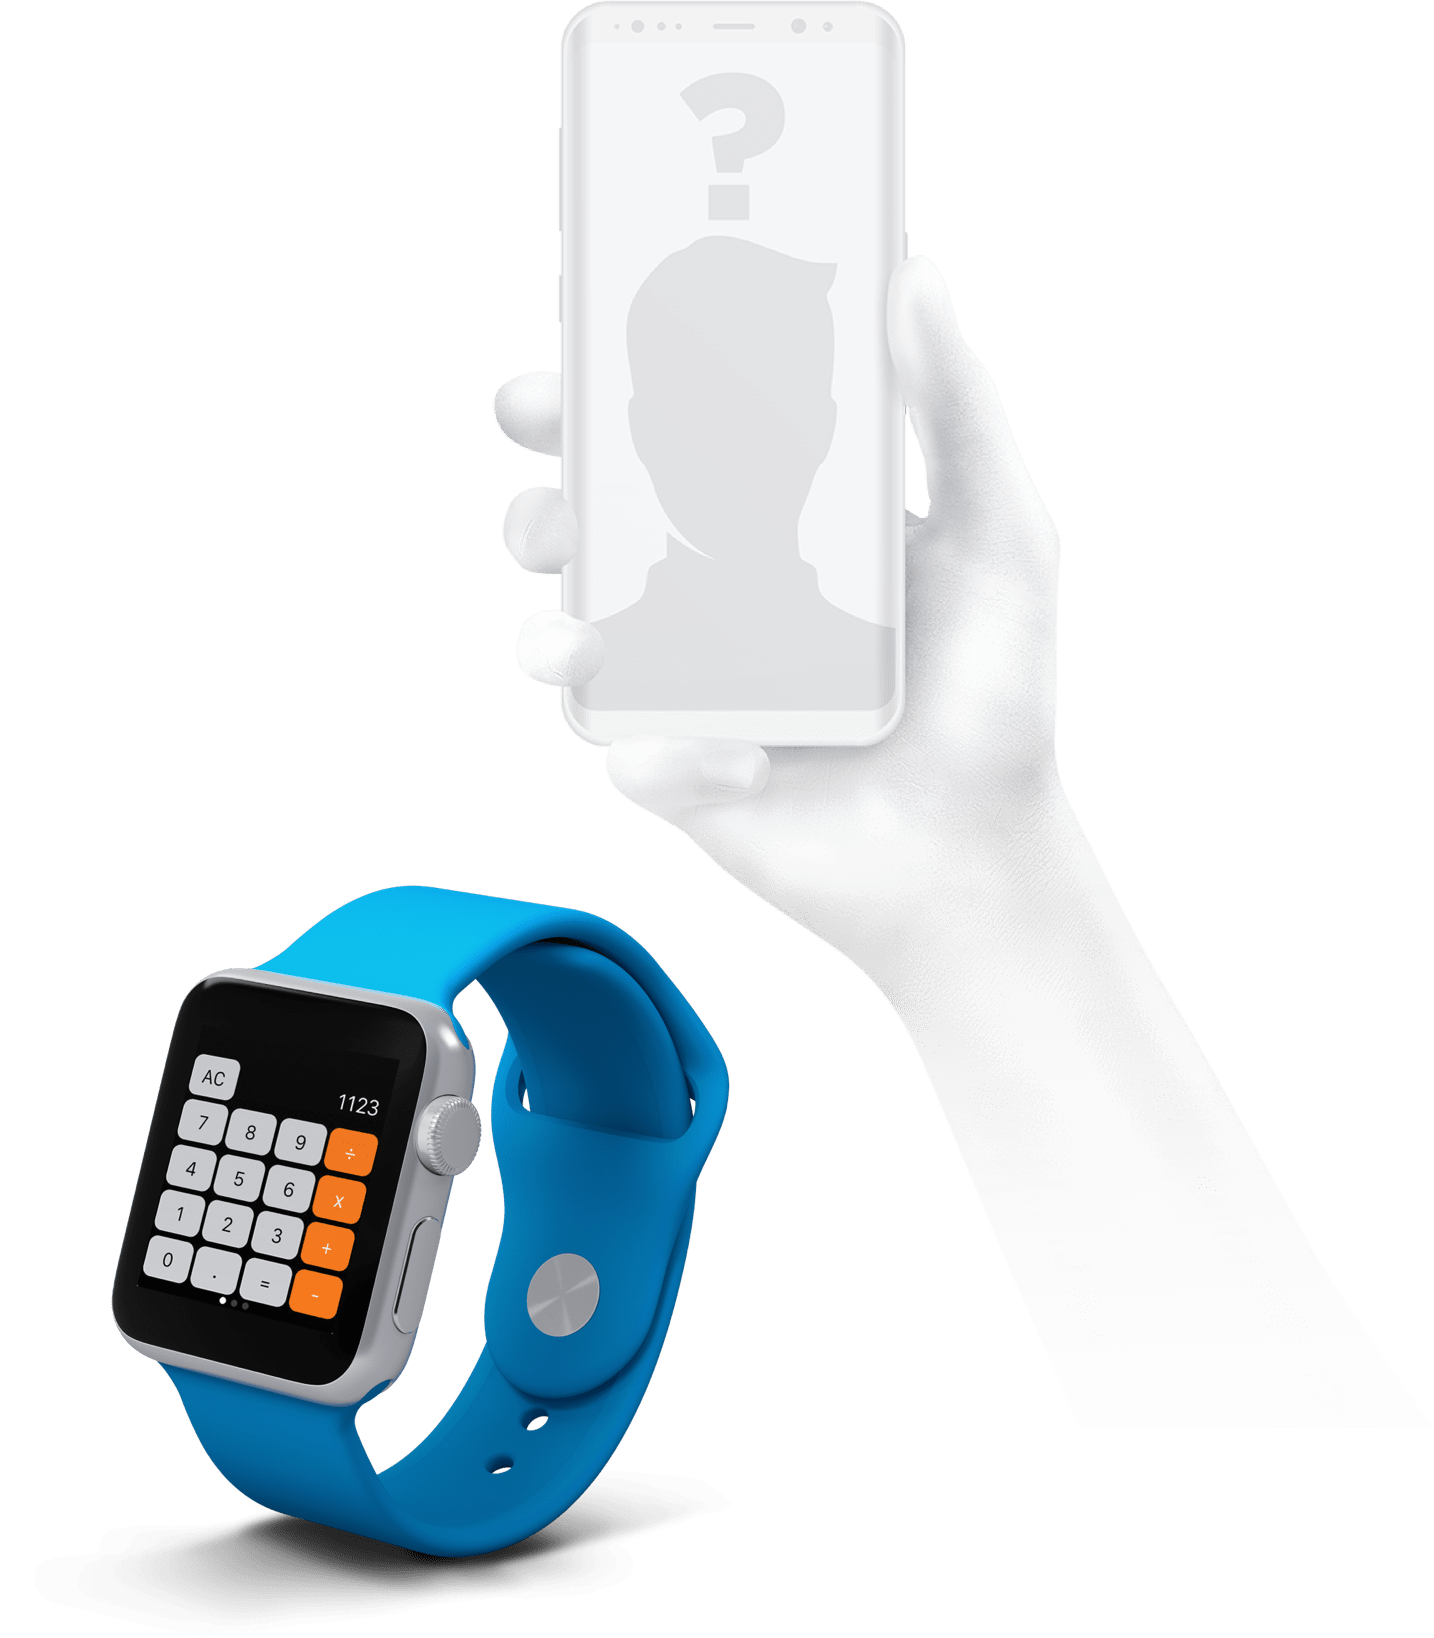 smartwatch and an almost fading hand holding a smartphone